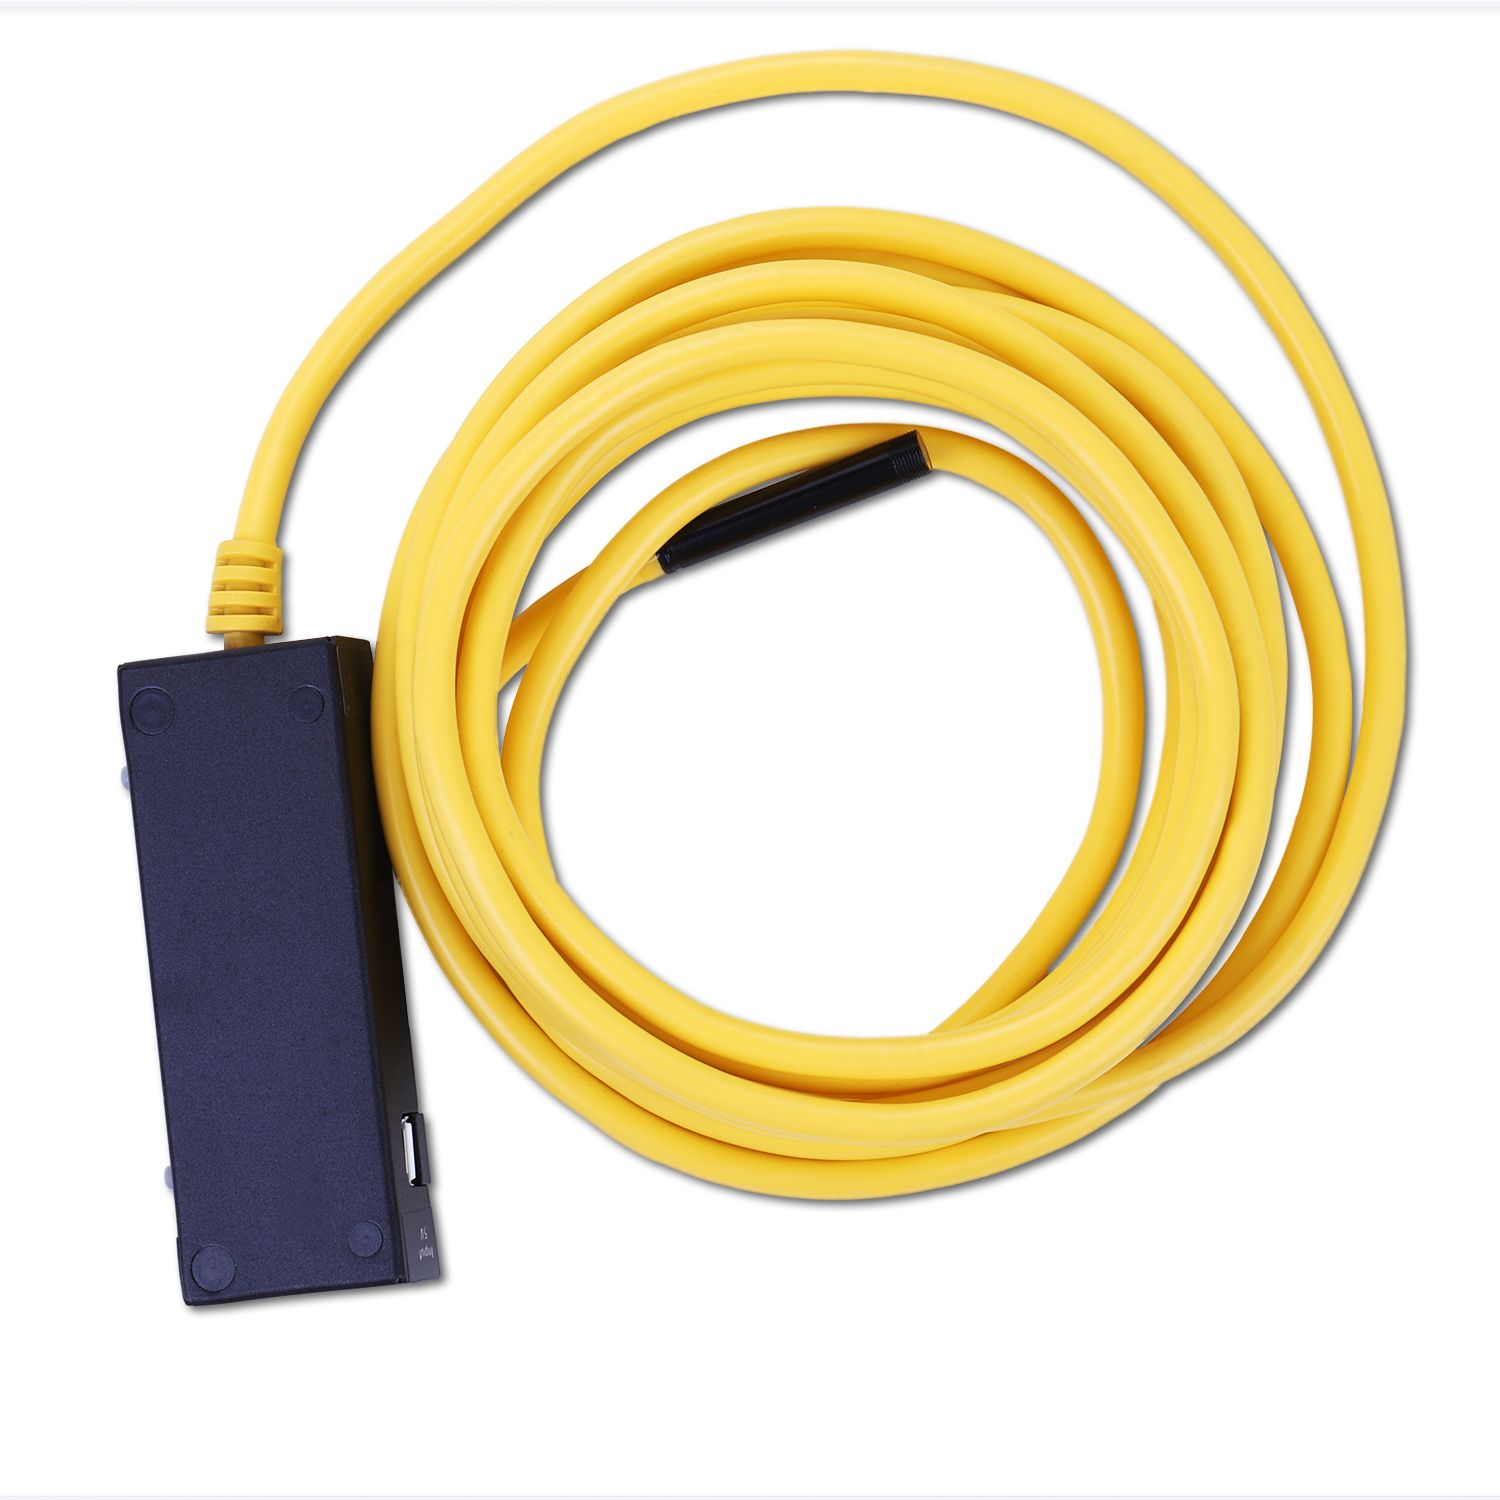 THGS 5.5mm OTG Endoscope Snake Tube Borescope HD Camera For Android or IOS (11.5FT)